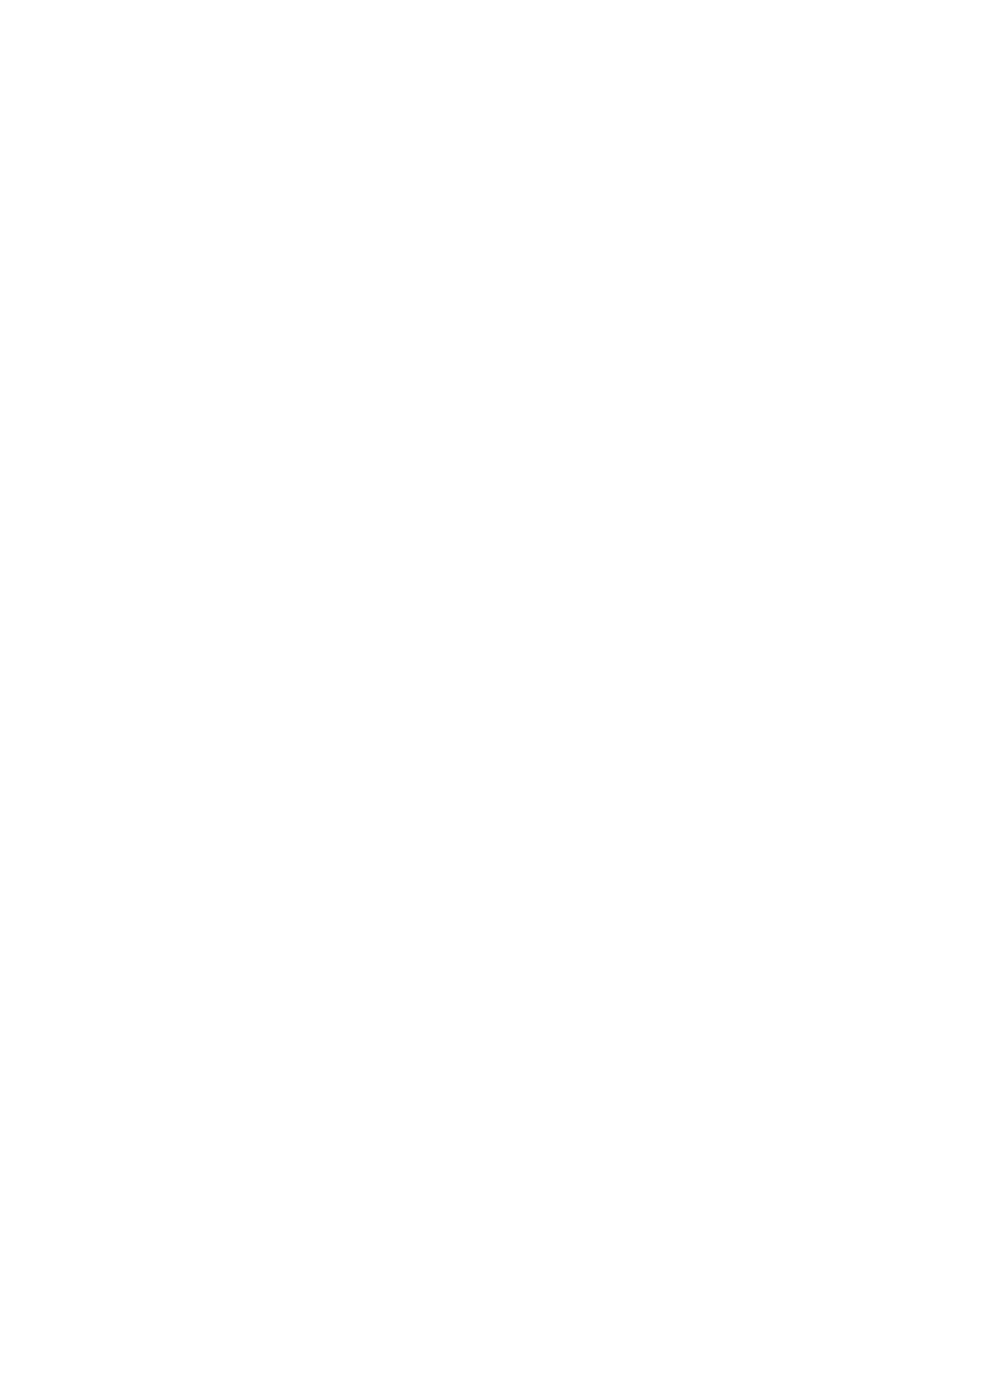 ORAL SURGERY.png